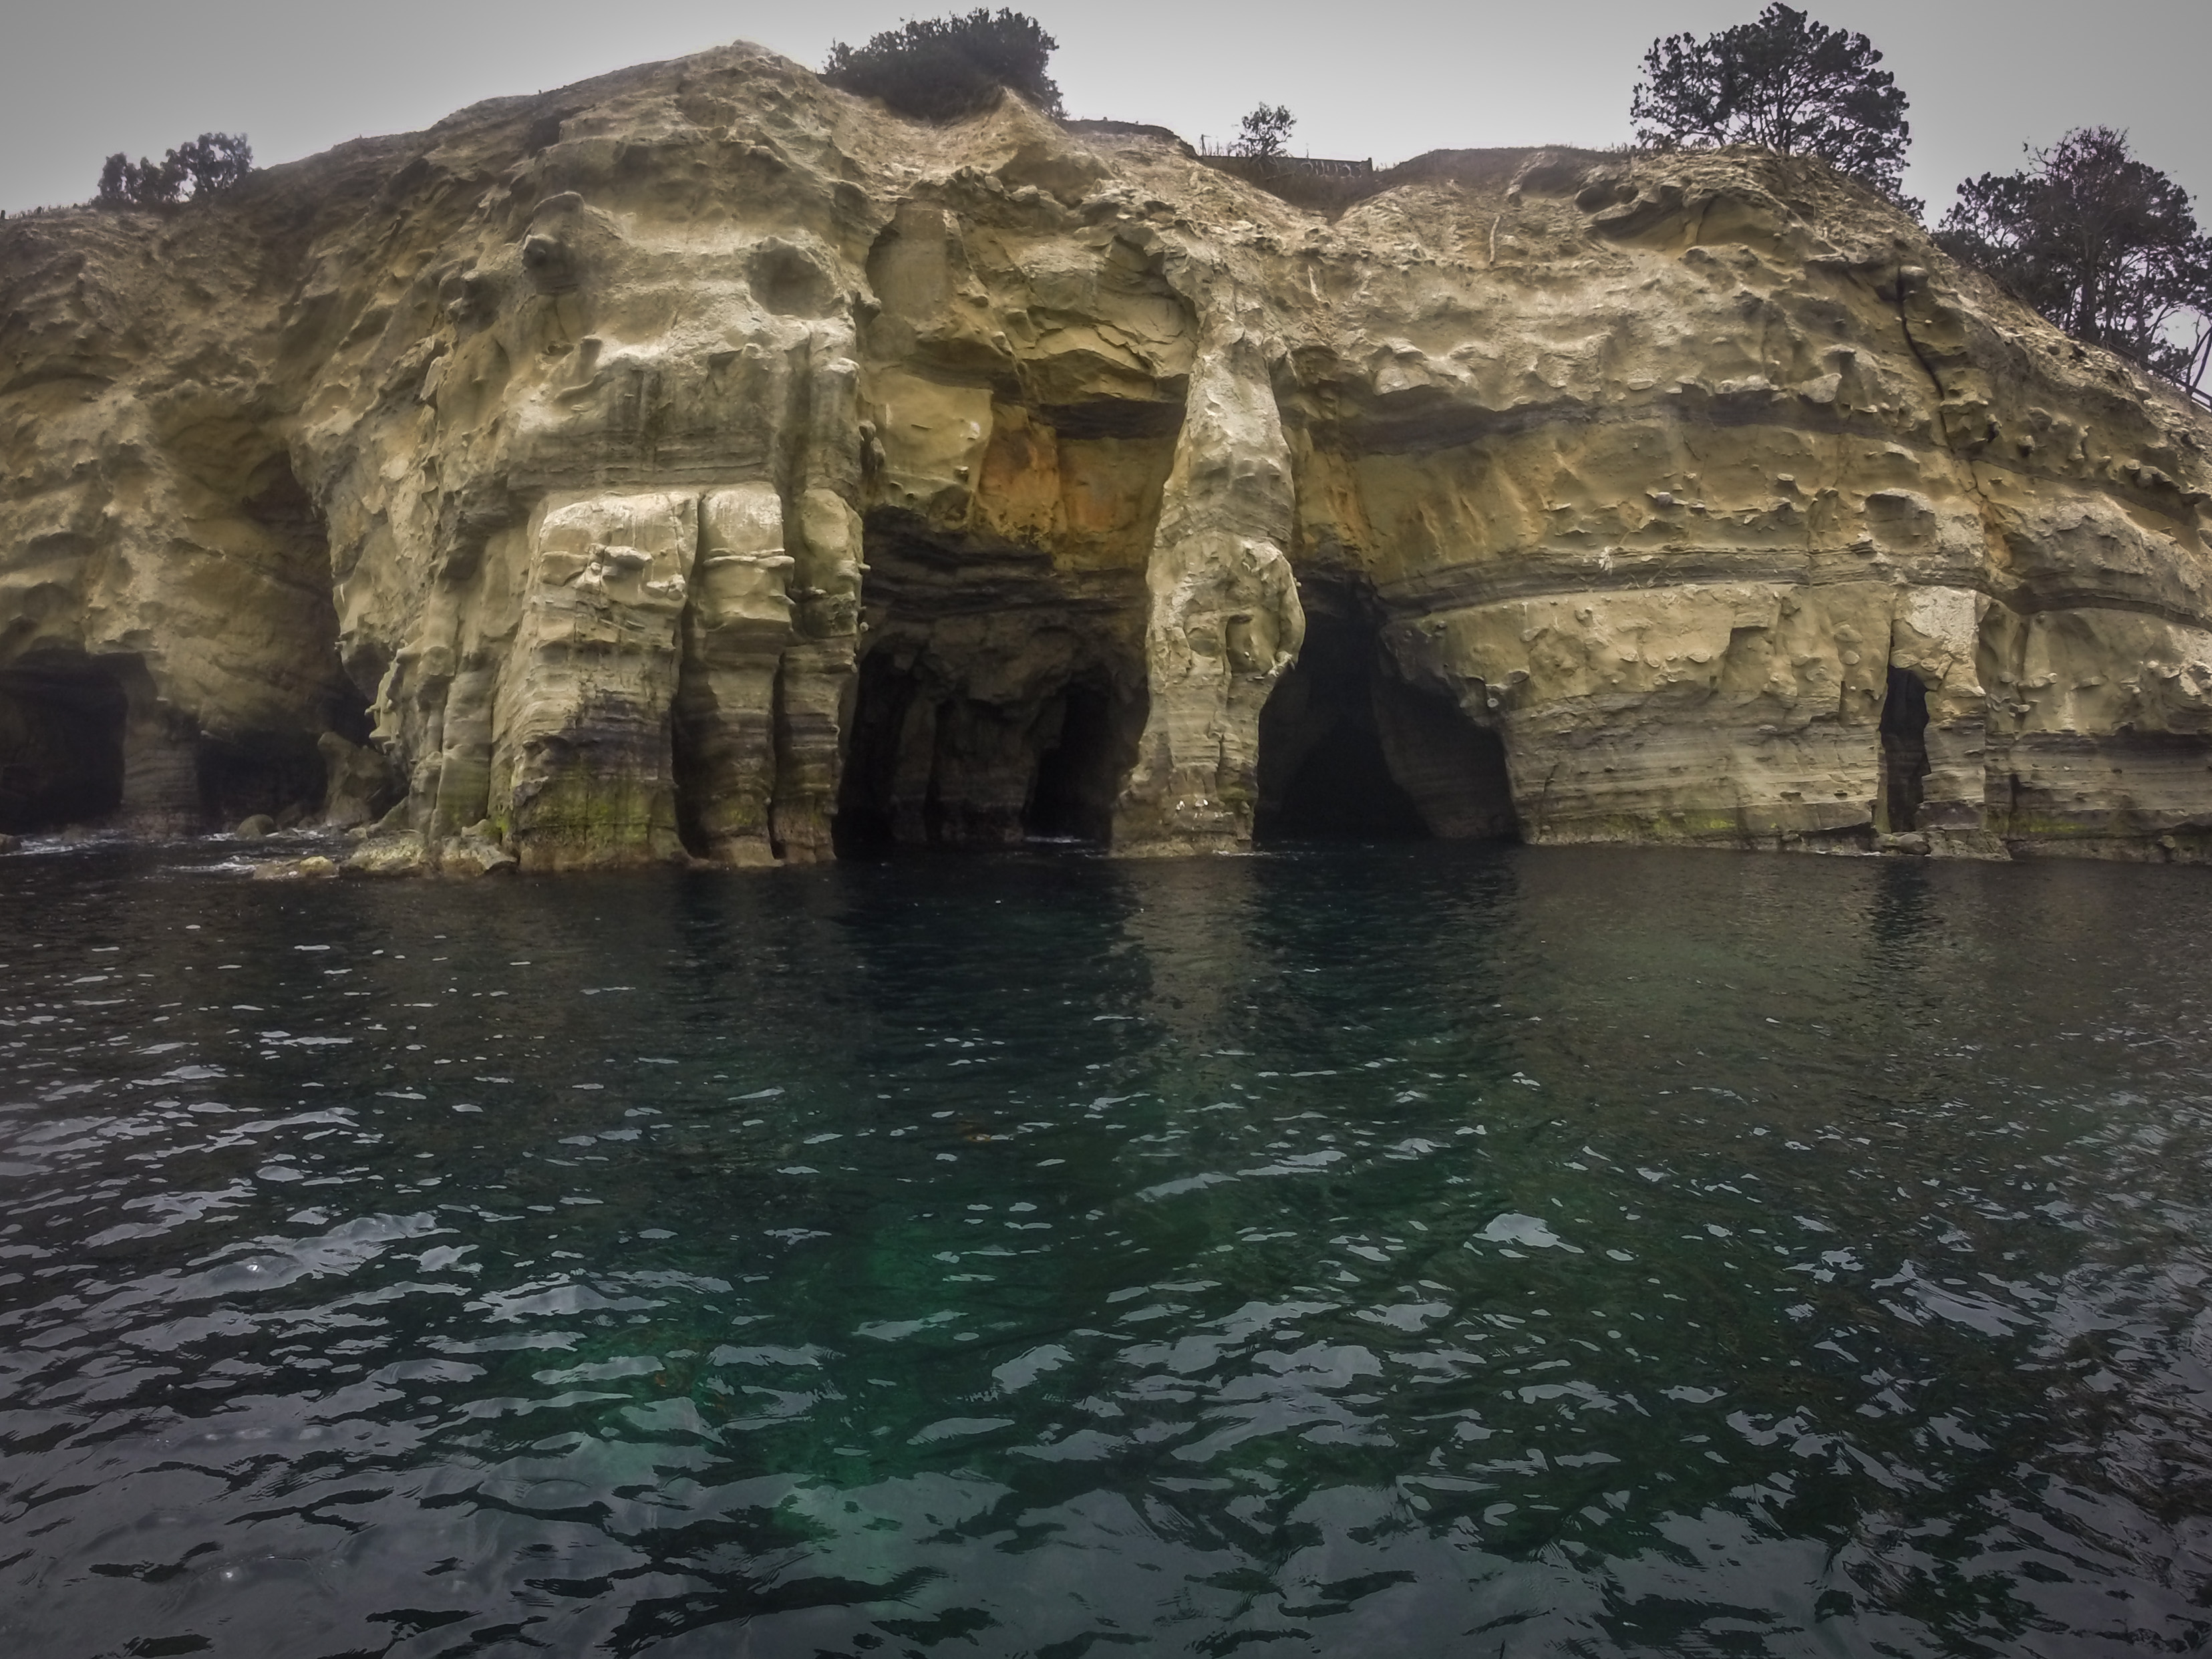 The caves near La Jolla Cove